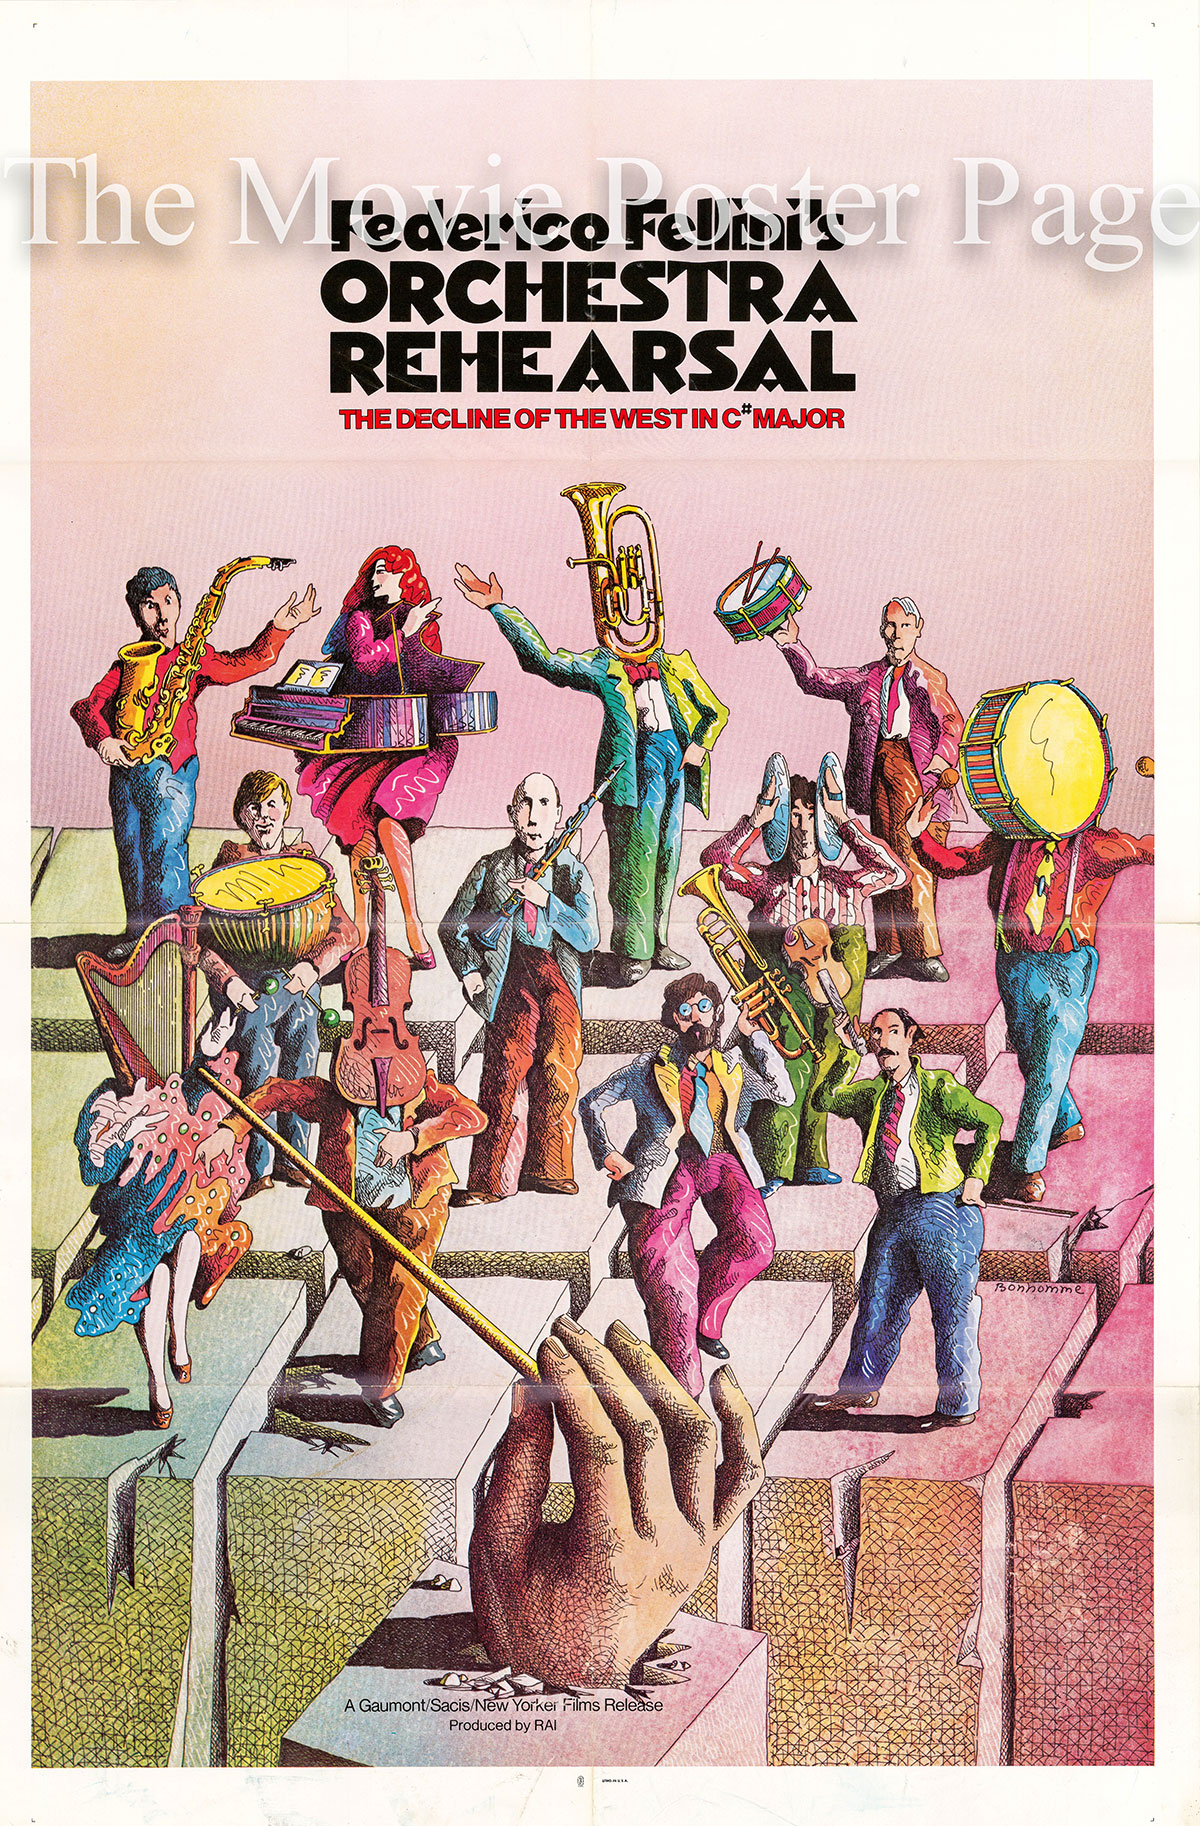 Pictured is a US one-sheet poster for the 1978 Federico Fellini film Orchestra Rehearsal starring Balduin Baas as the conductor.